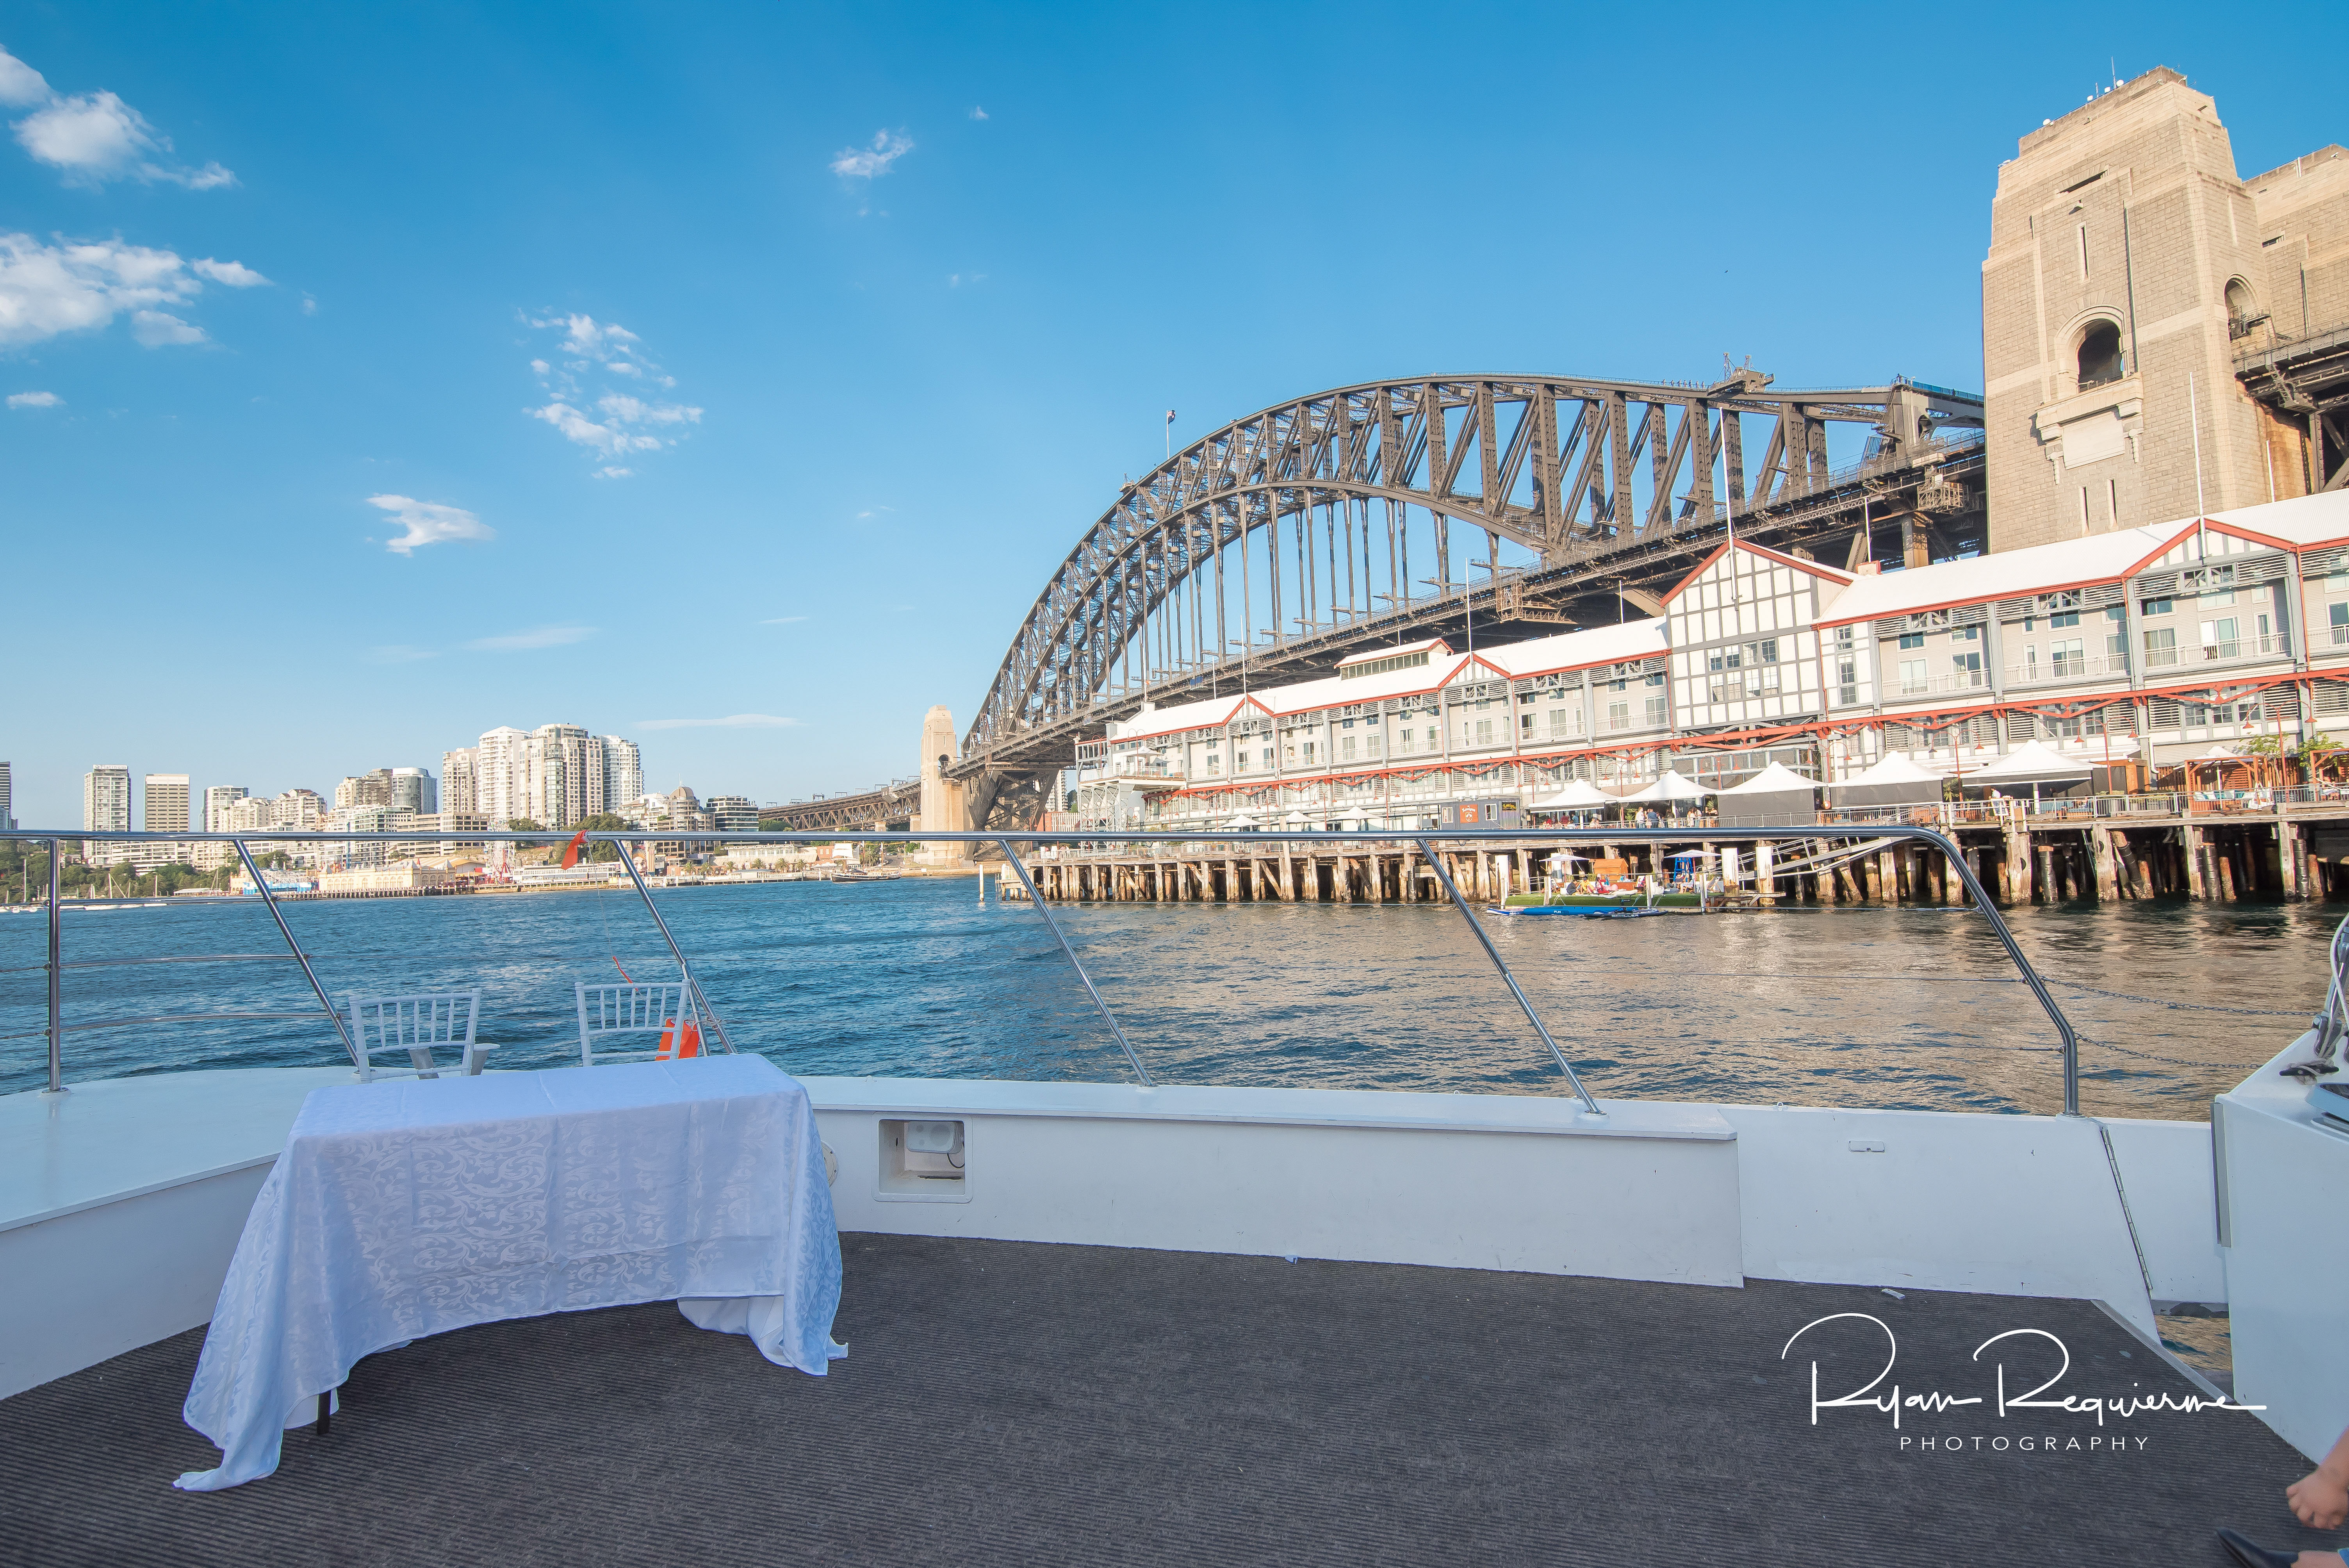 Eventphotoau-548